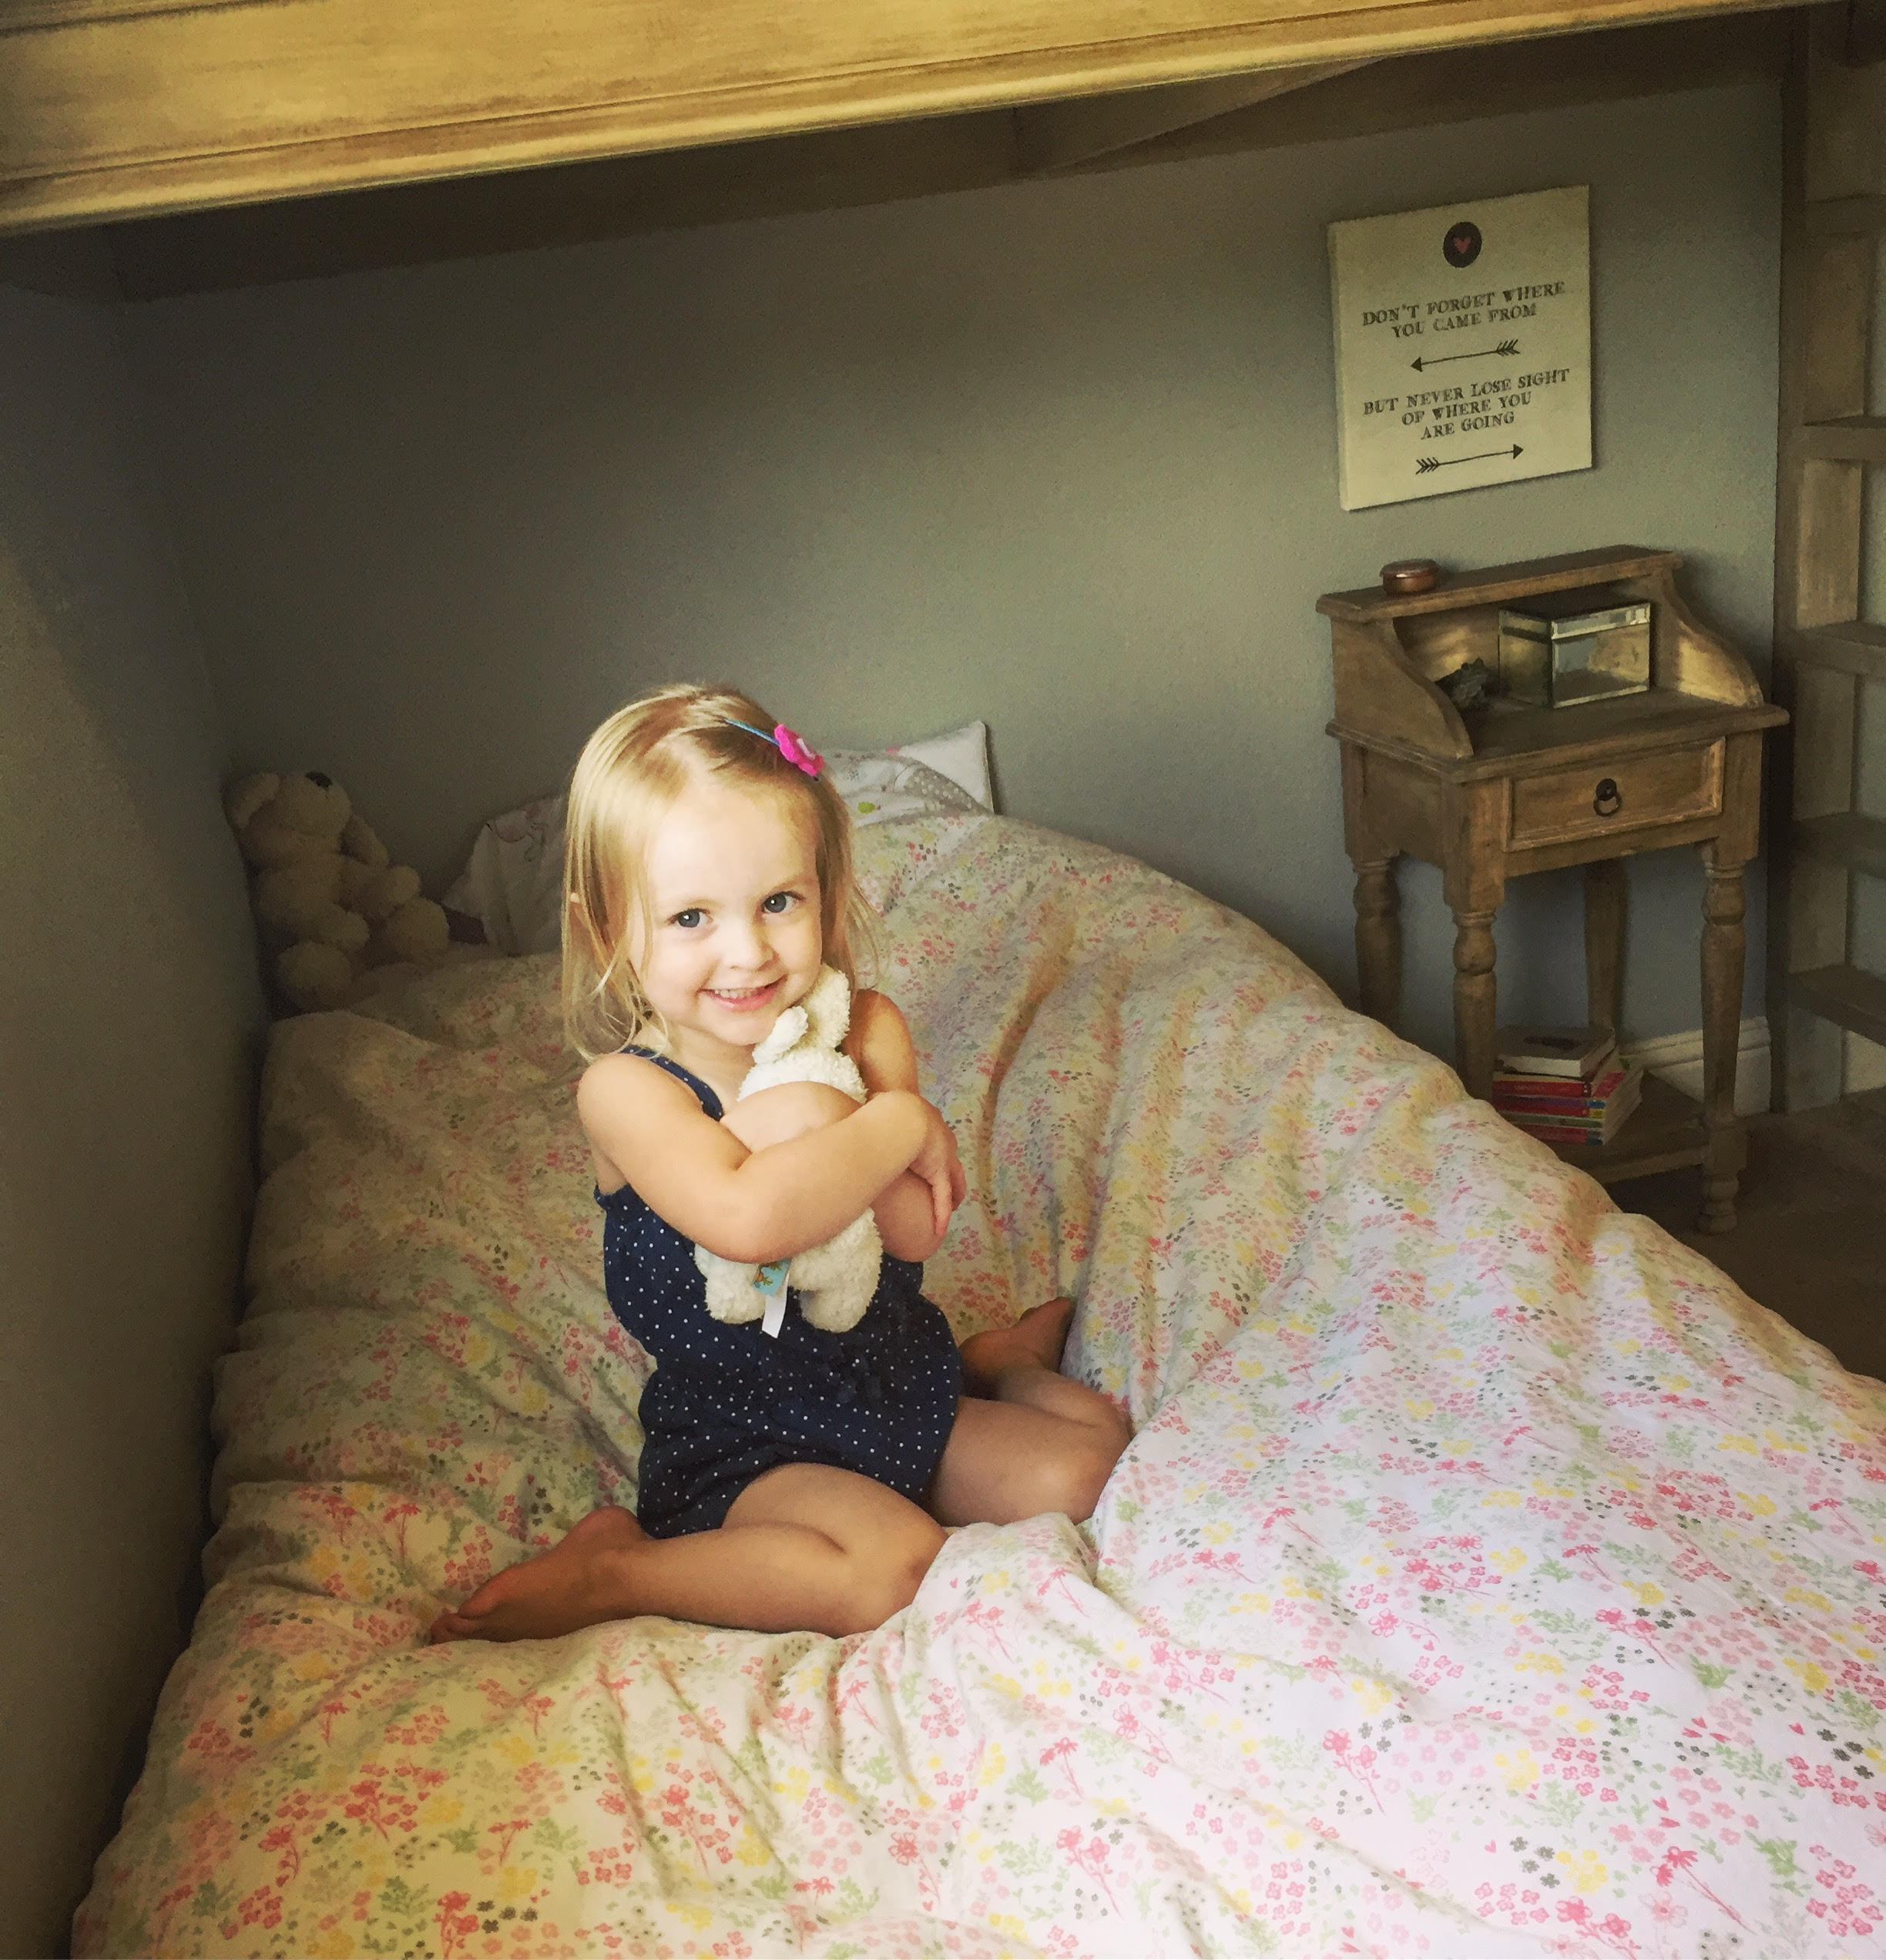 Moving toddlers from the crib to a big kid bed - it's always an adventure!